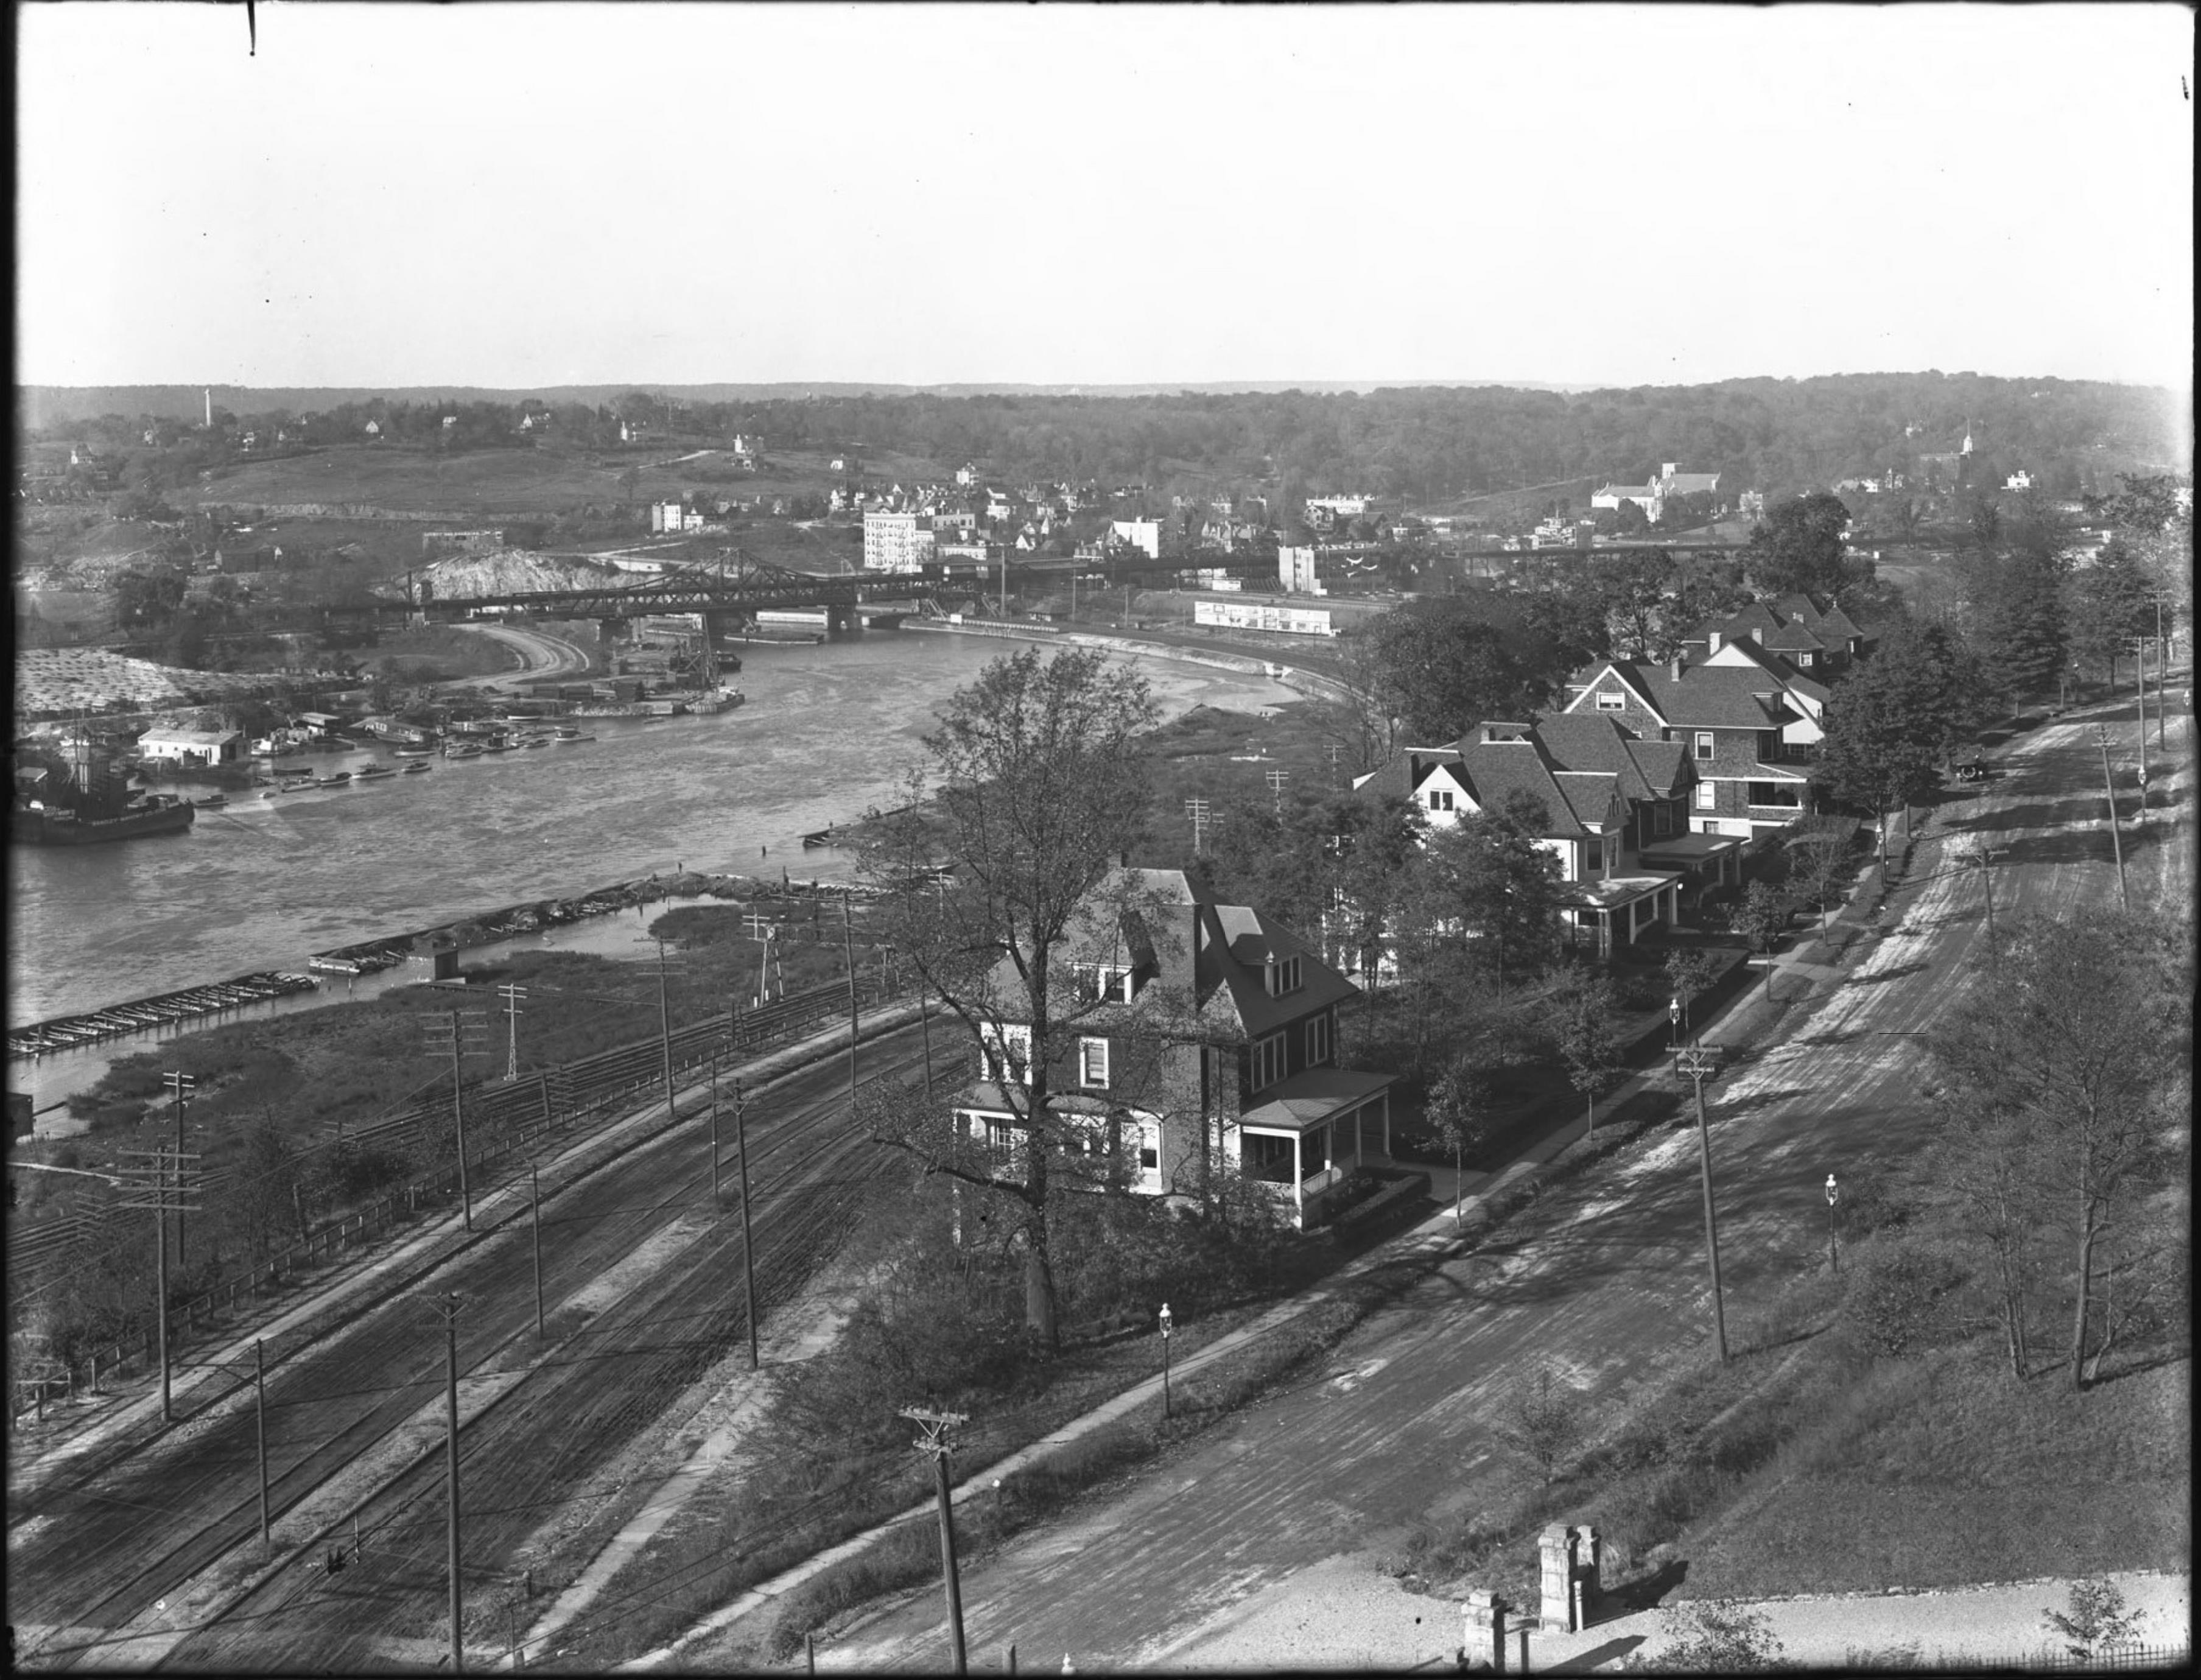 View of Kingsbridge / Marble Hill and the Harlem River around 225th Street from Webb College [i.e. Webb's Academy and Home for Shipbuilders], Bronx, October 22, 1914.